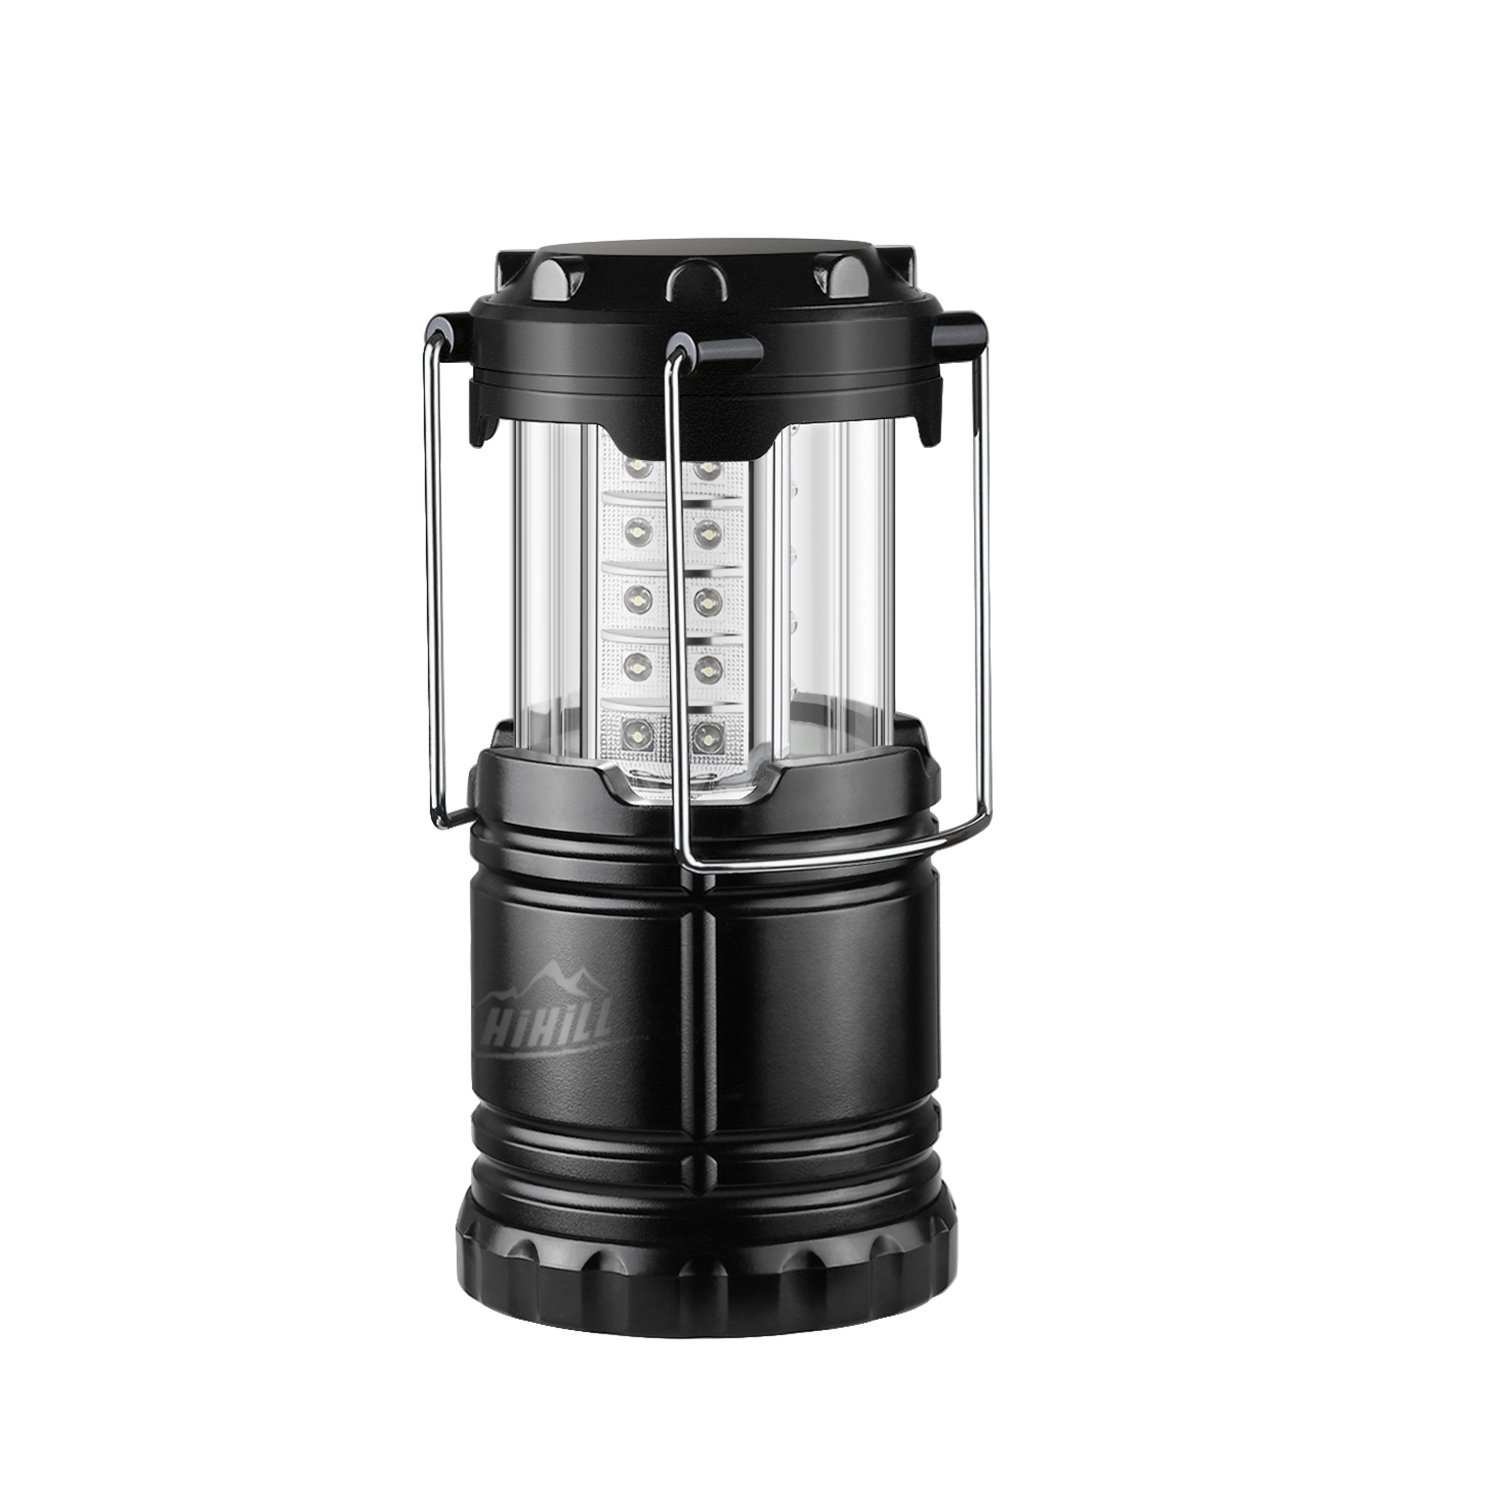 HiHiLL Camping Lantern Collapsible, 30 LEDs, Battery ...